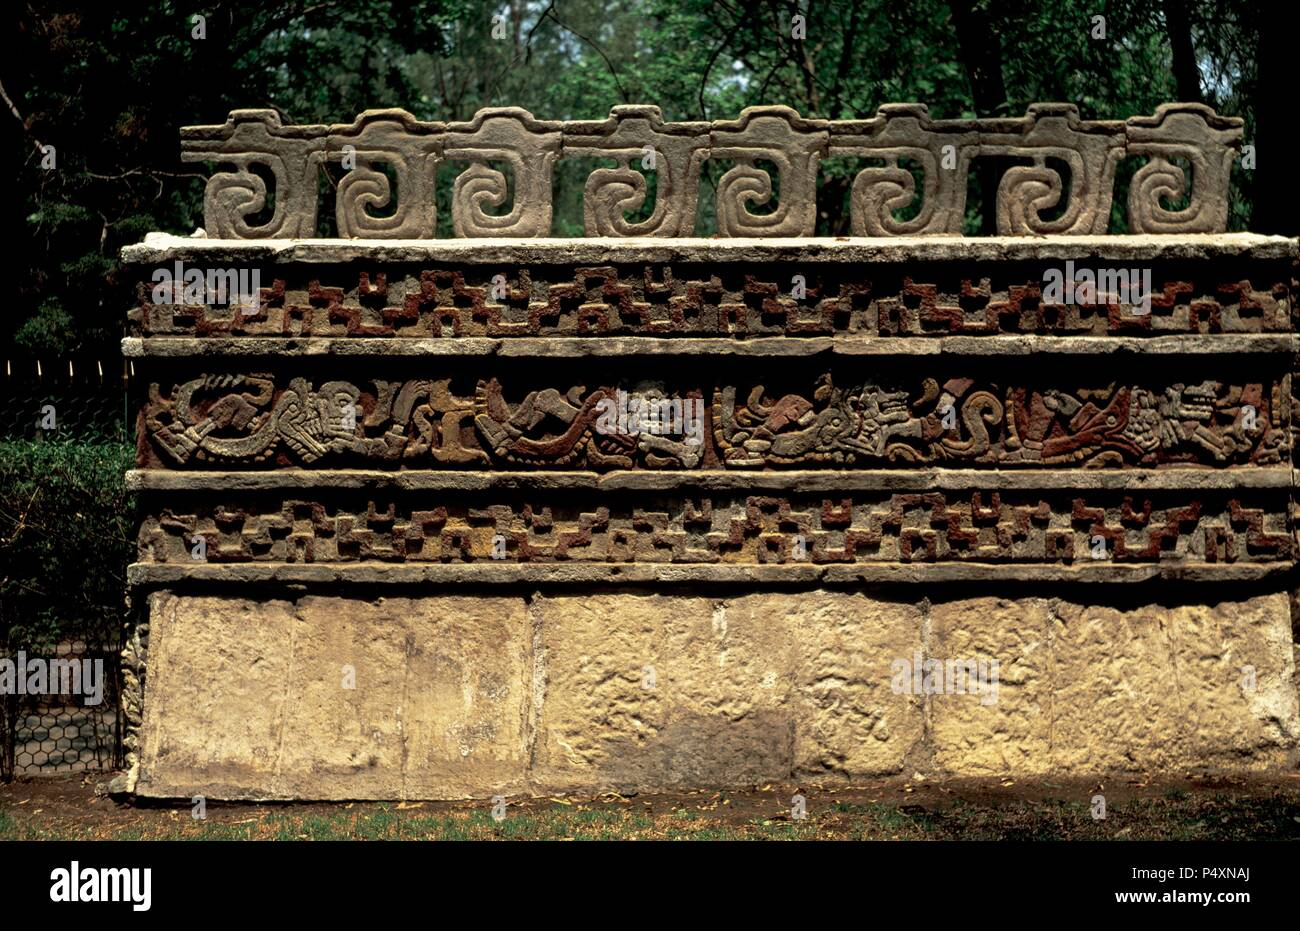 Pre-Columbian Art. Tula. Coatepantli or Serpent Wall.  Toltec civilization. Post-Classic Period. 900-1200 A.C. Back of the Temple of Quetzalcoatl. Museum of Anthropology. Mexico. - Stock Image